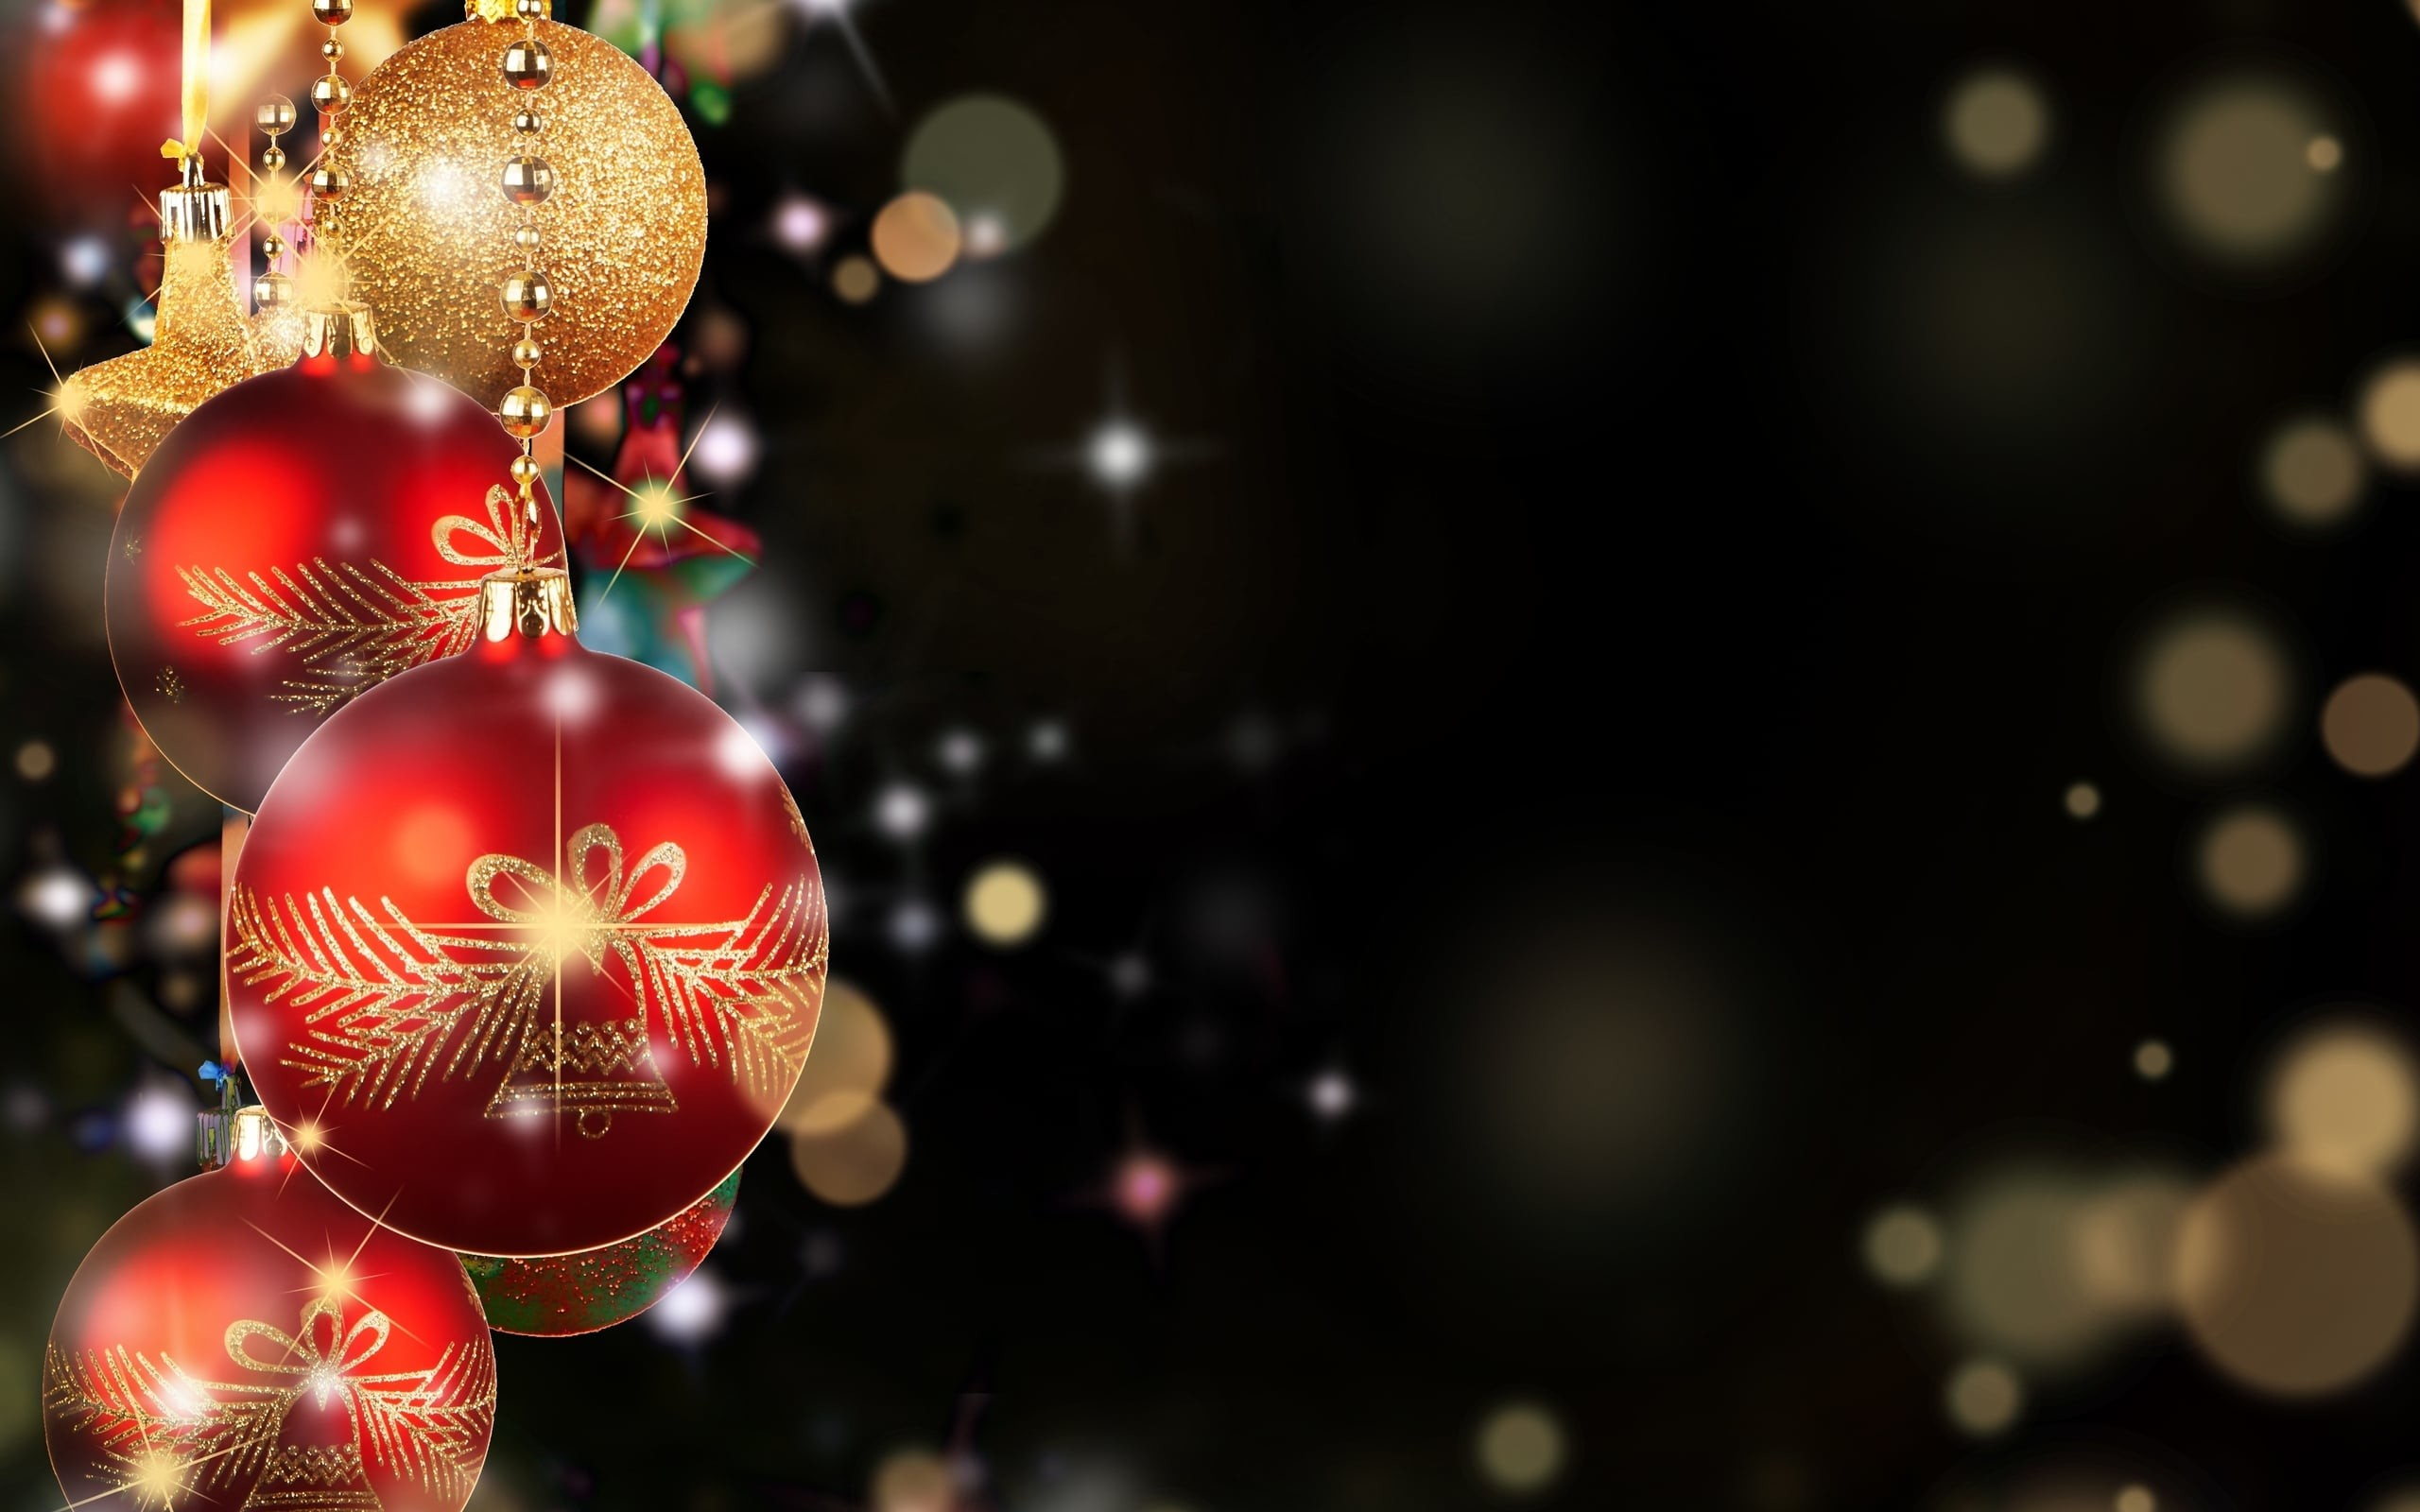 2560x1600 Best image of Christmas decorations